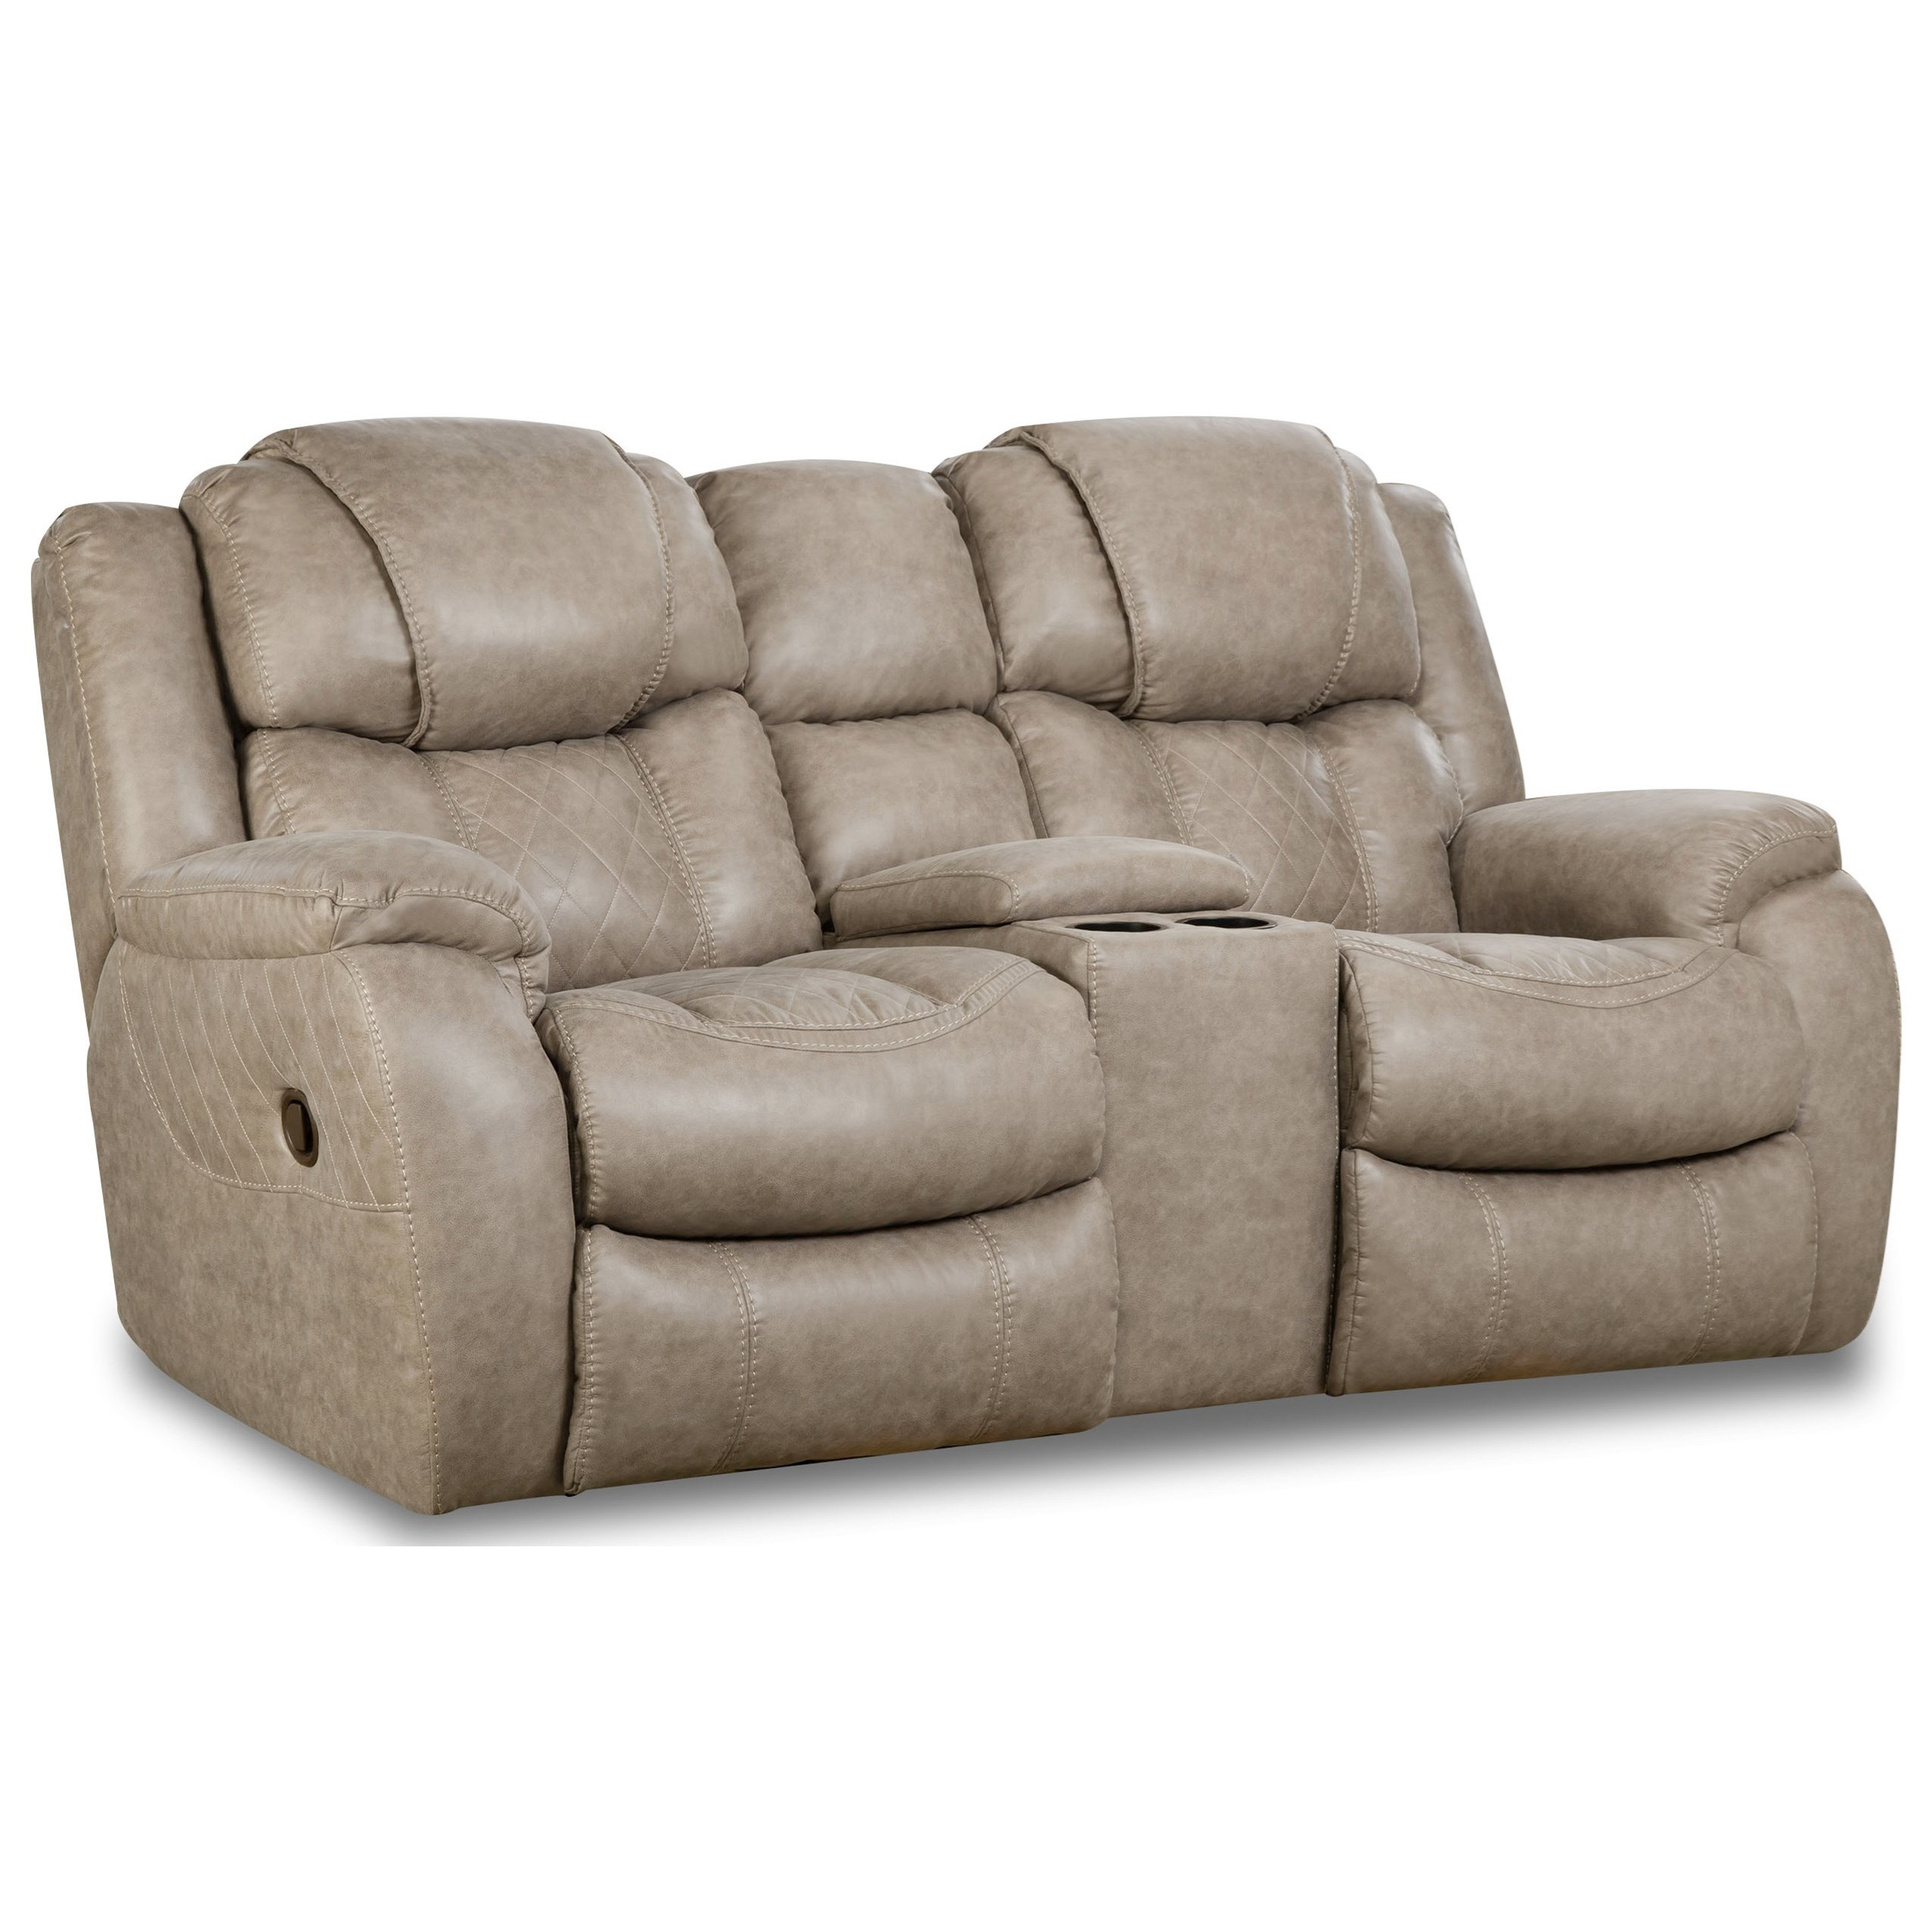 182 Reclining Console Loveseat at Prime Brothers Furniture